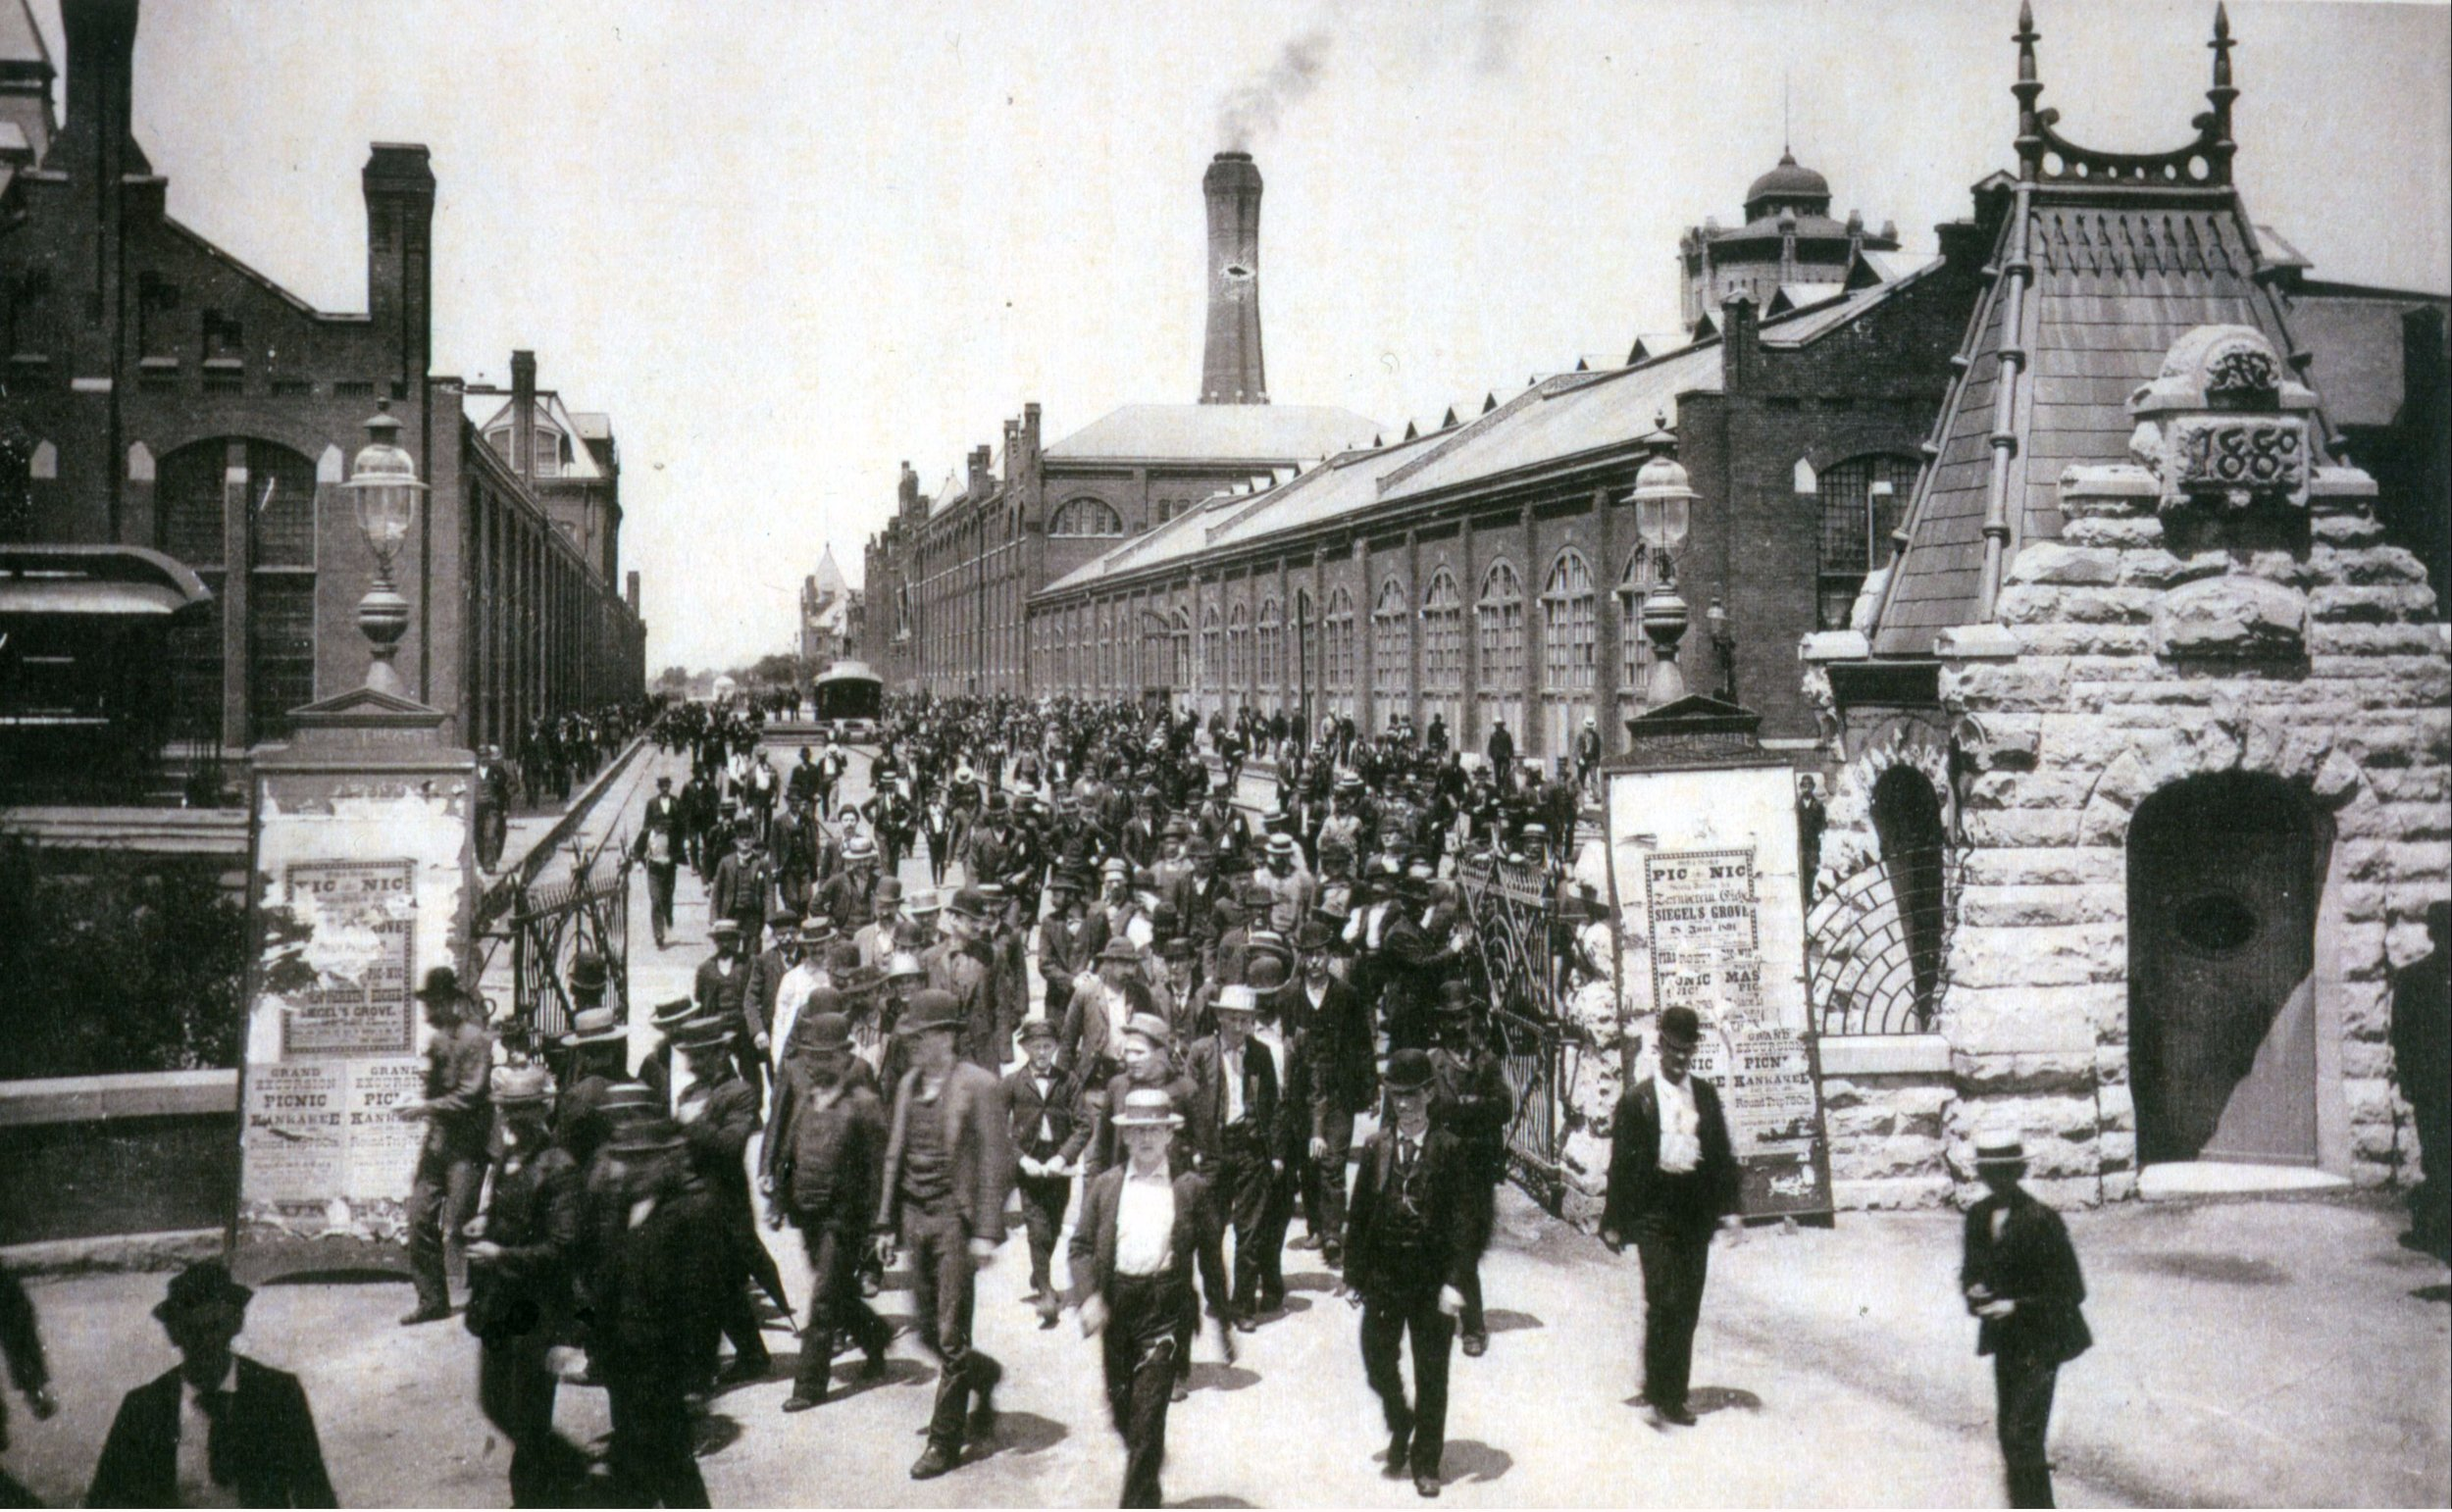 PULLMAN WORKERS LEAVING THE FACTORY